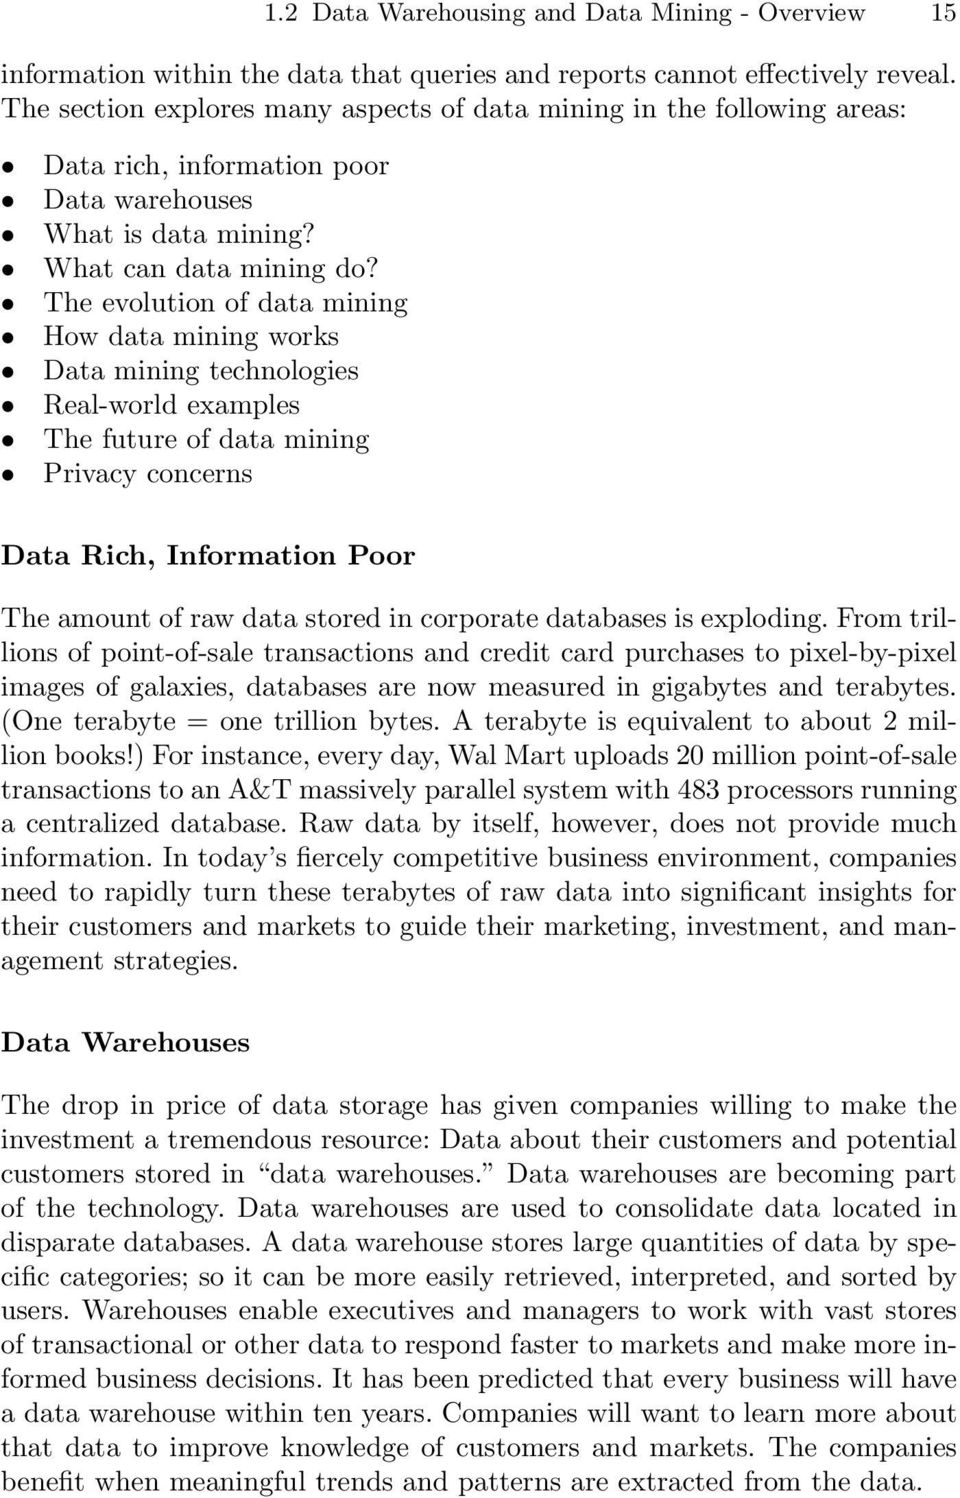 Introduction to Data Mining Principles - PDF